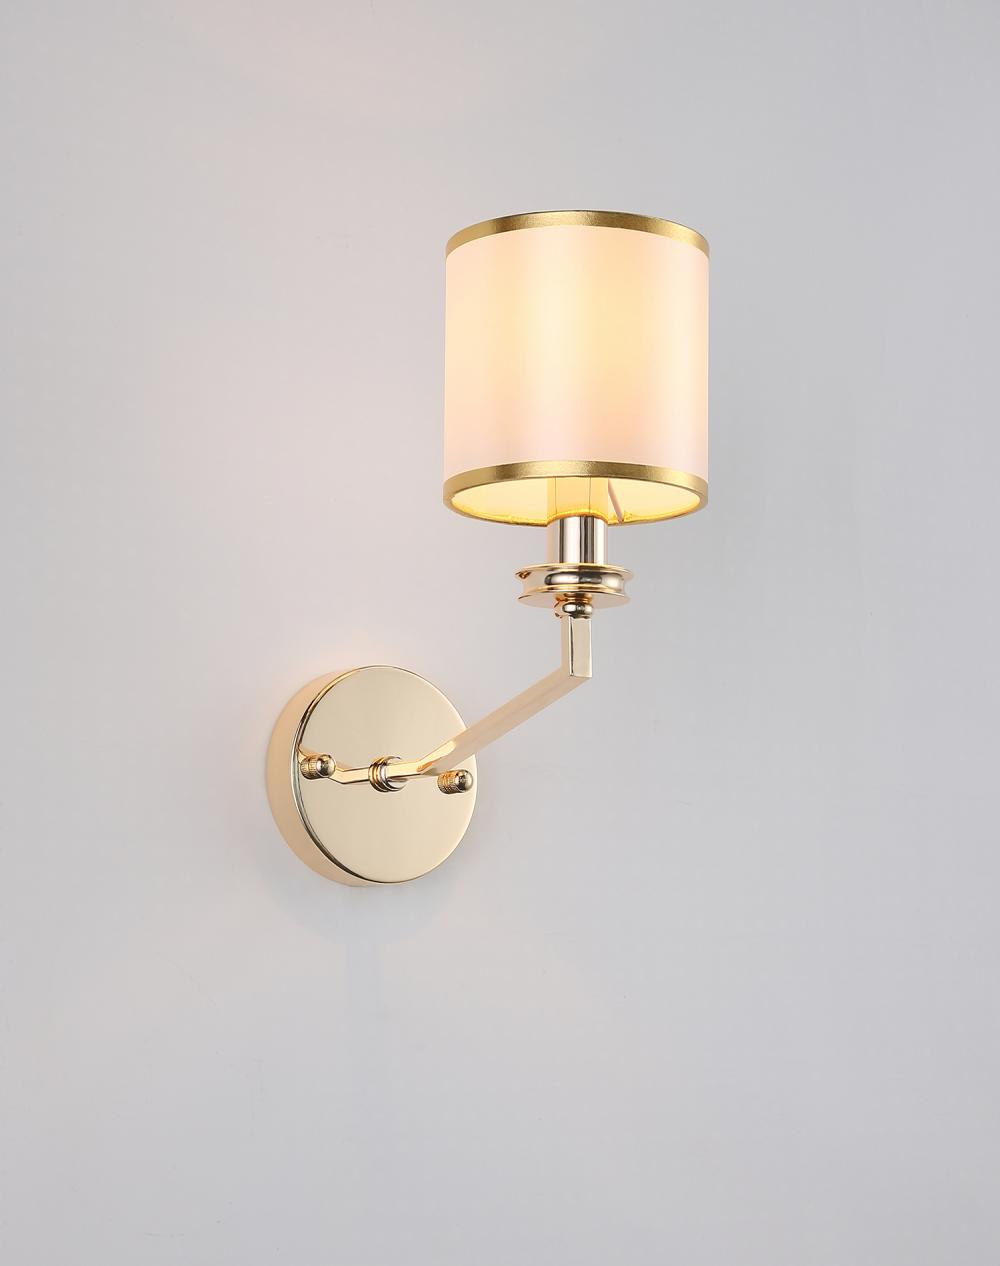 Decorative Wall Mounted Lamp Designs